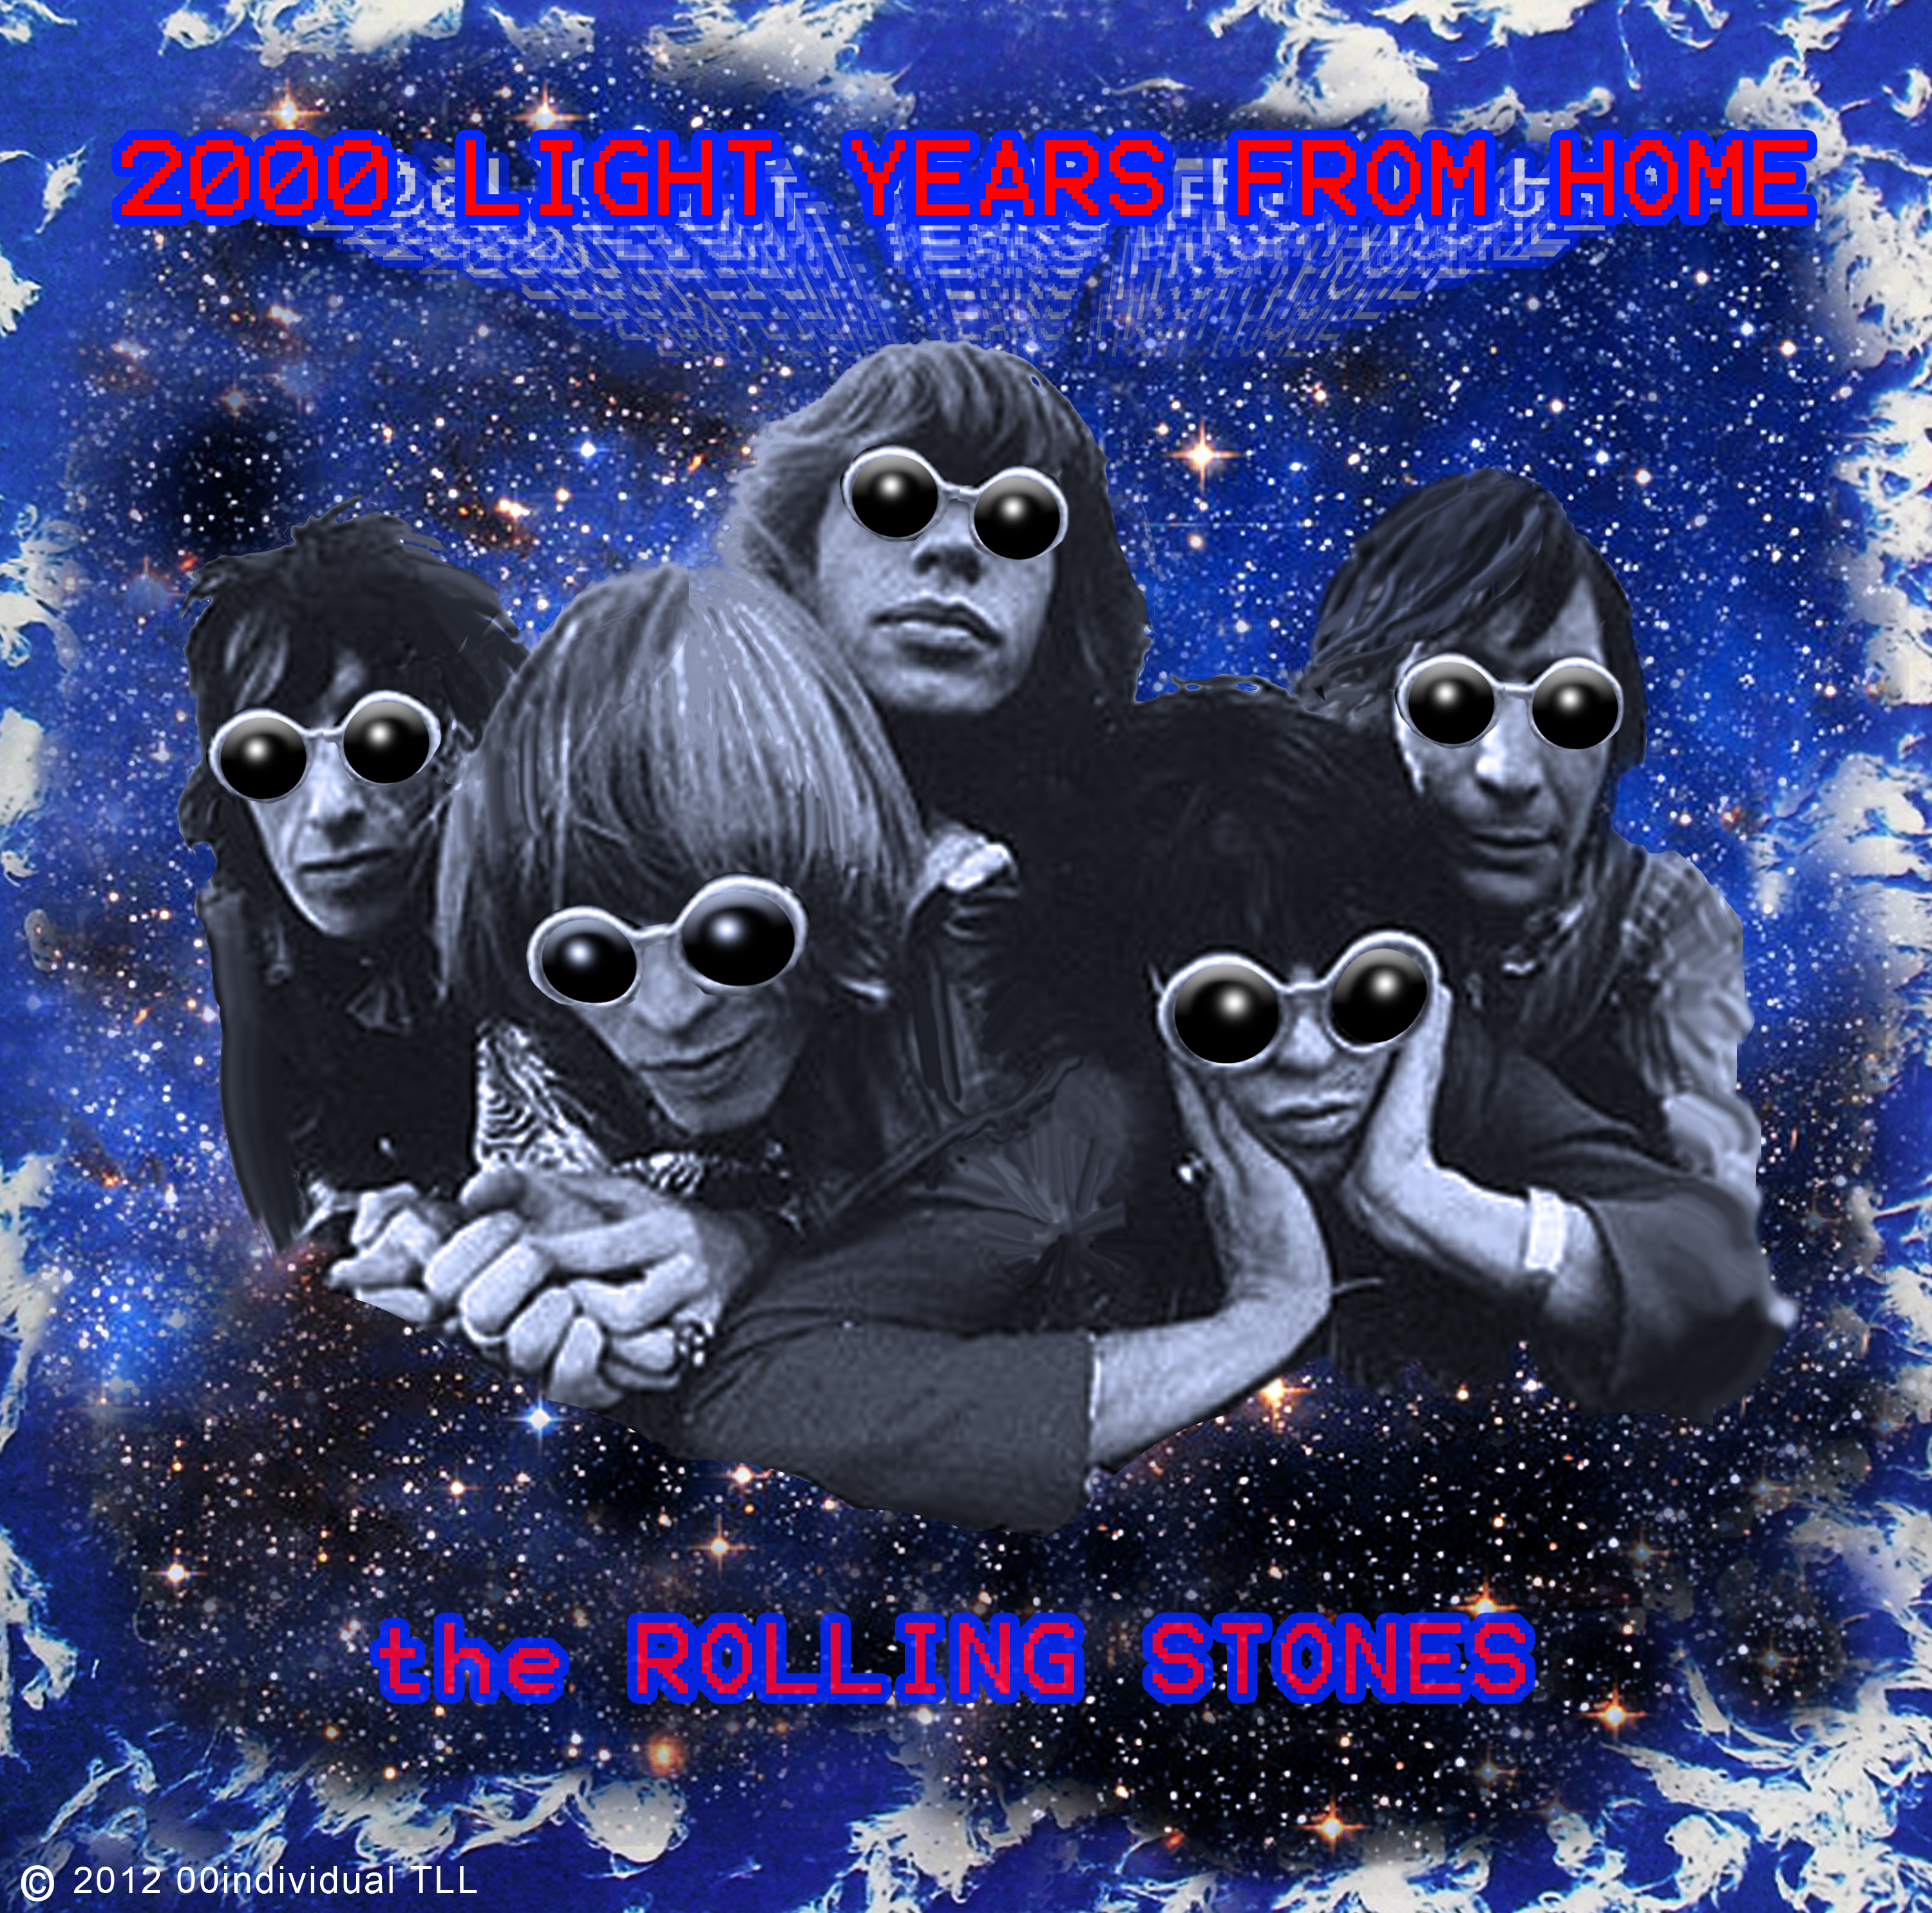 1960s Psychedelic Songs 2000 LIGHT YEARS FROM HOME THE